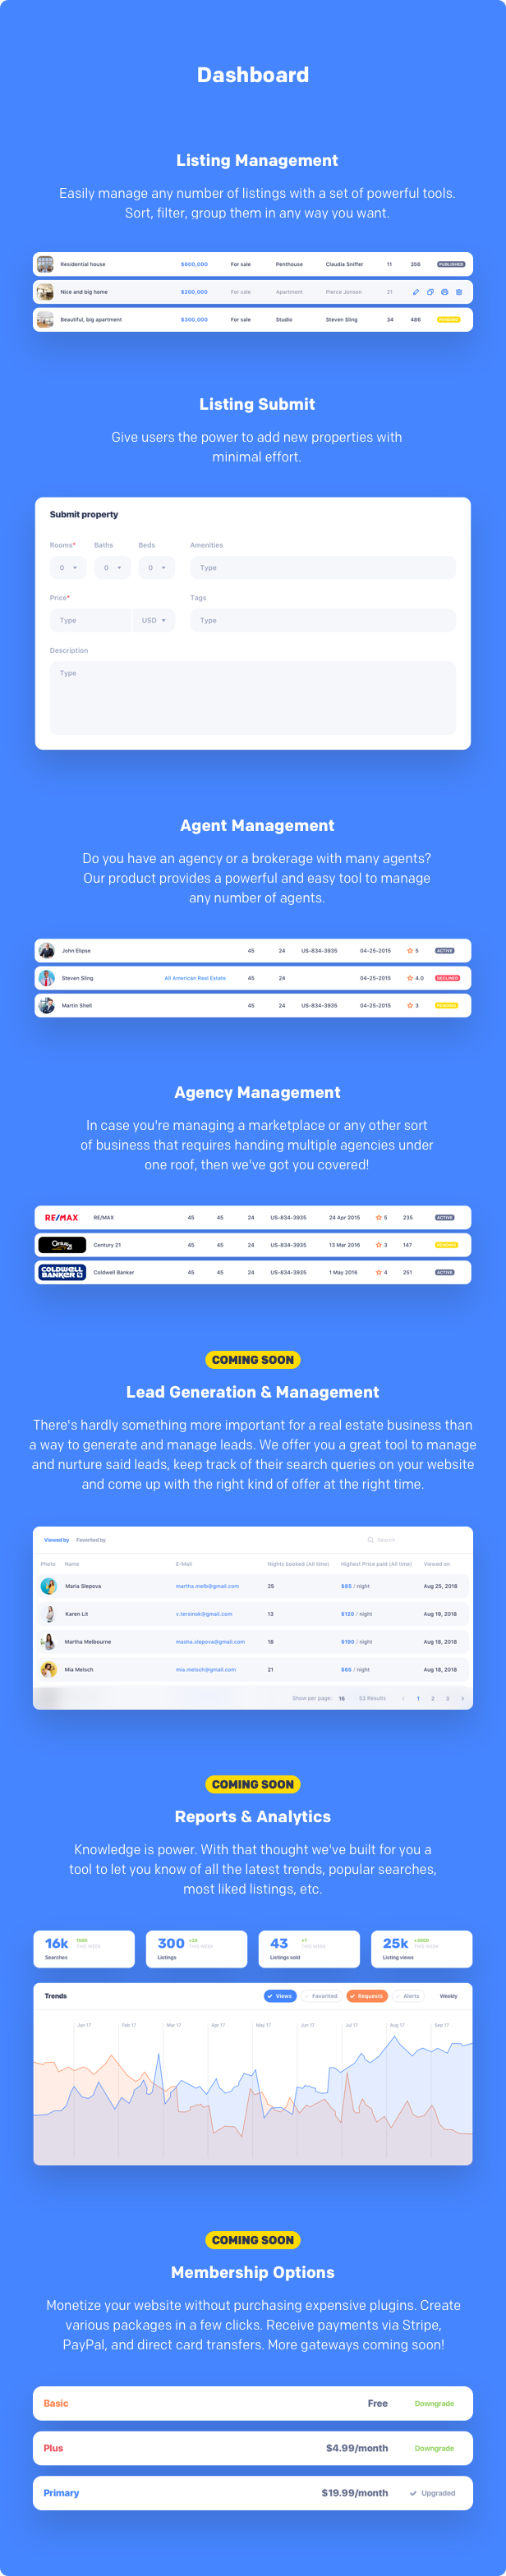 real estate CRM, Lead capture, Membership, Reports, Analytics